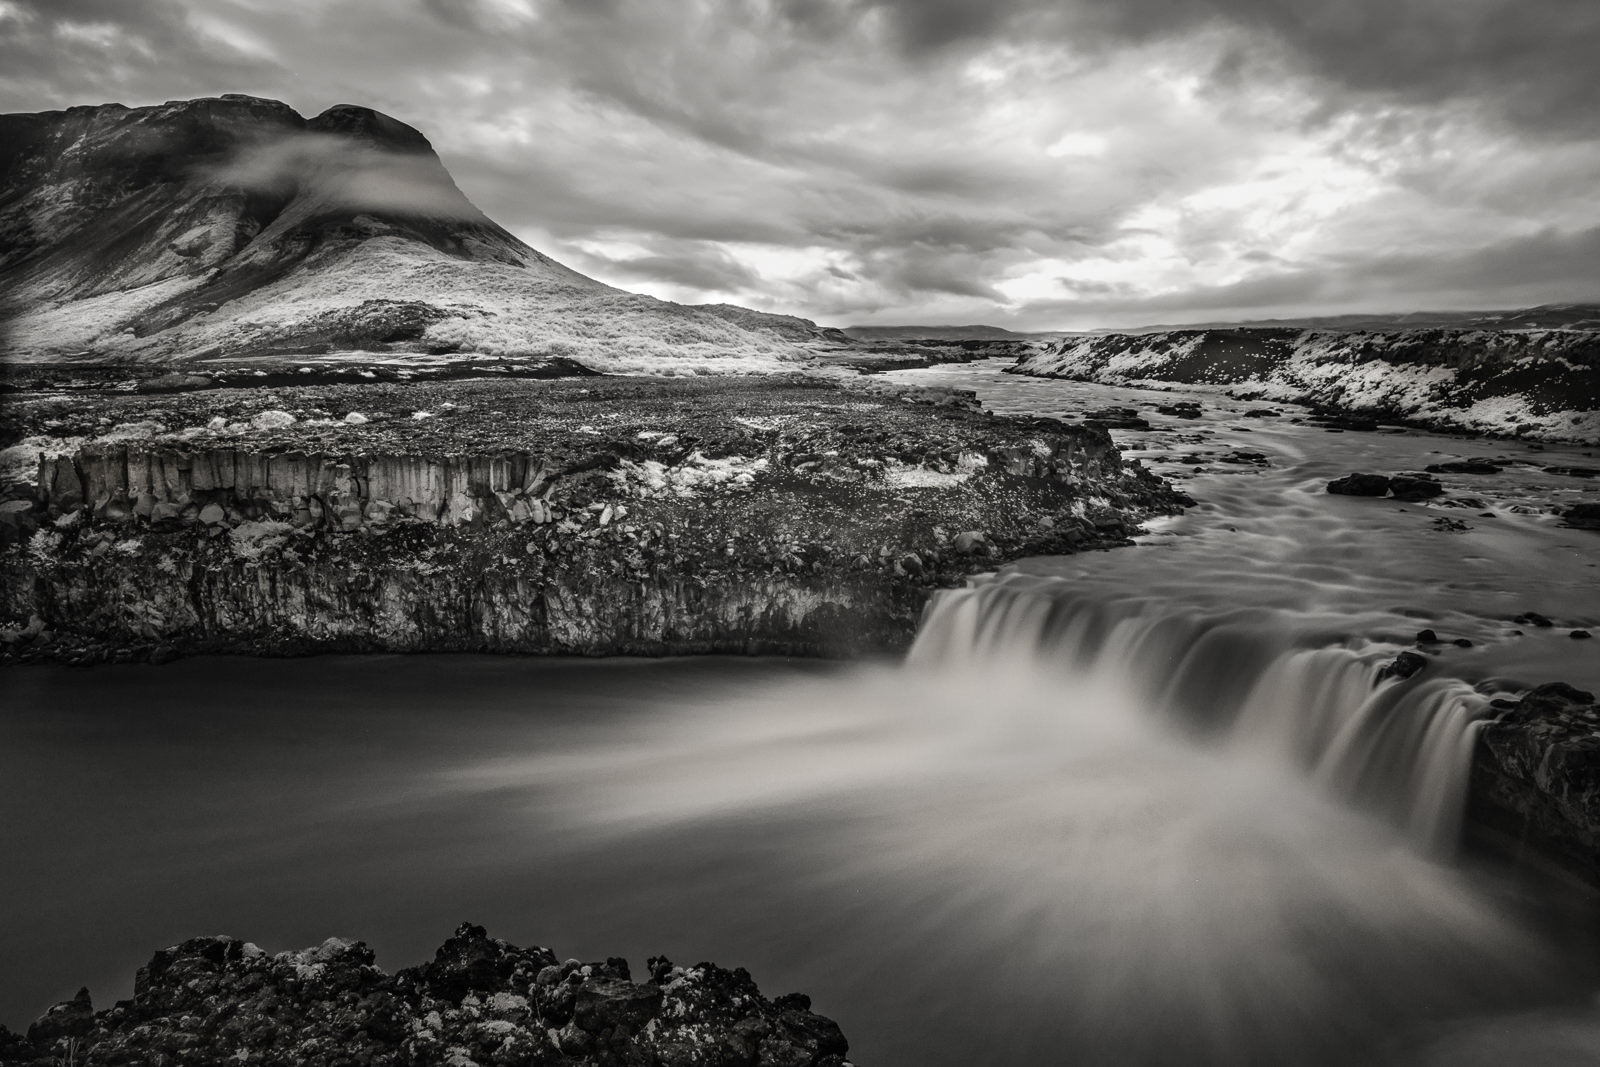 Þjófafoss shot in InfraRed using 720nm Hoya IR filter. Þjófafoss (Thjofafoss) waterfall is located on the river Þjórsá on the east side of the Merkurhraun lava fields in the south of Iceland (XF 16-55mm f2.8 at 16mm 30s f5.6 ISO200)